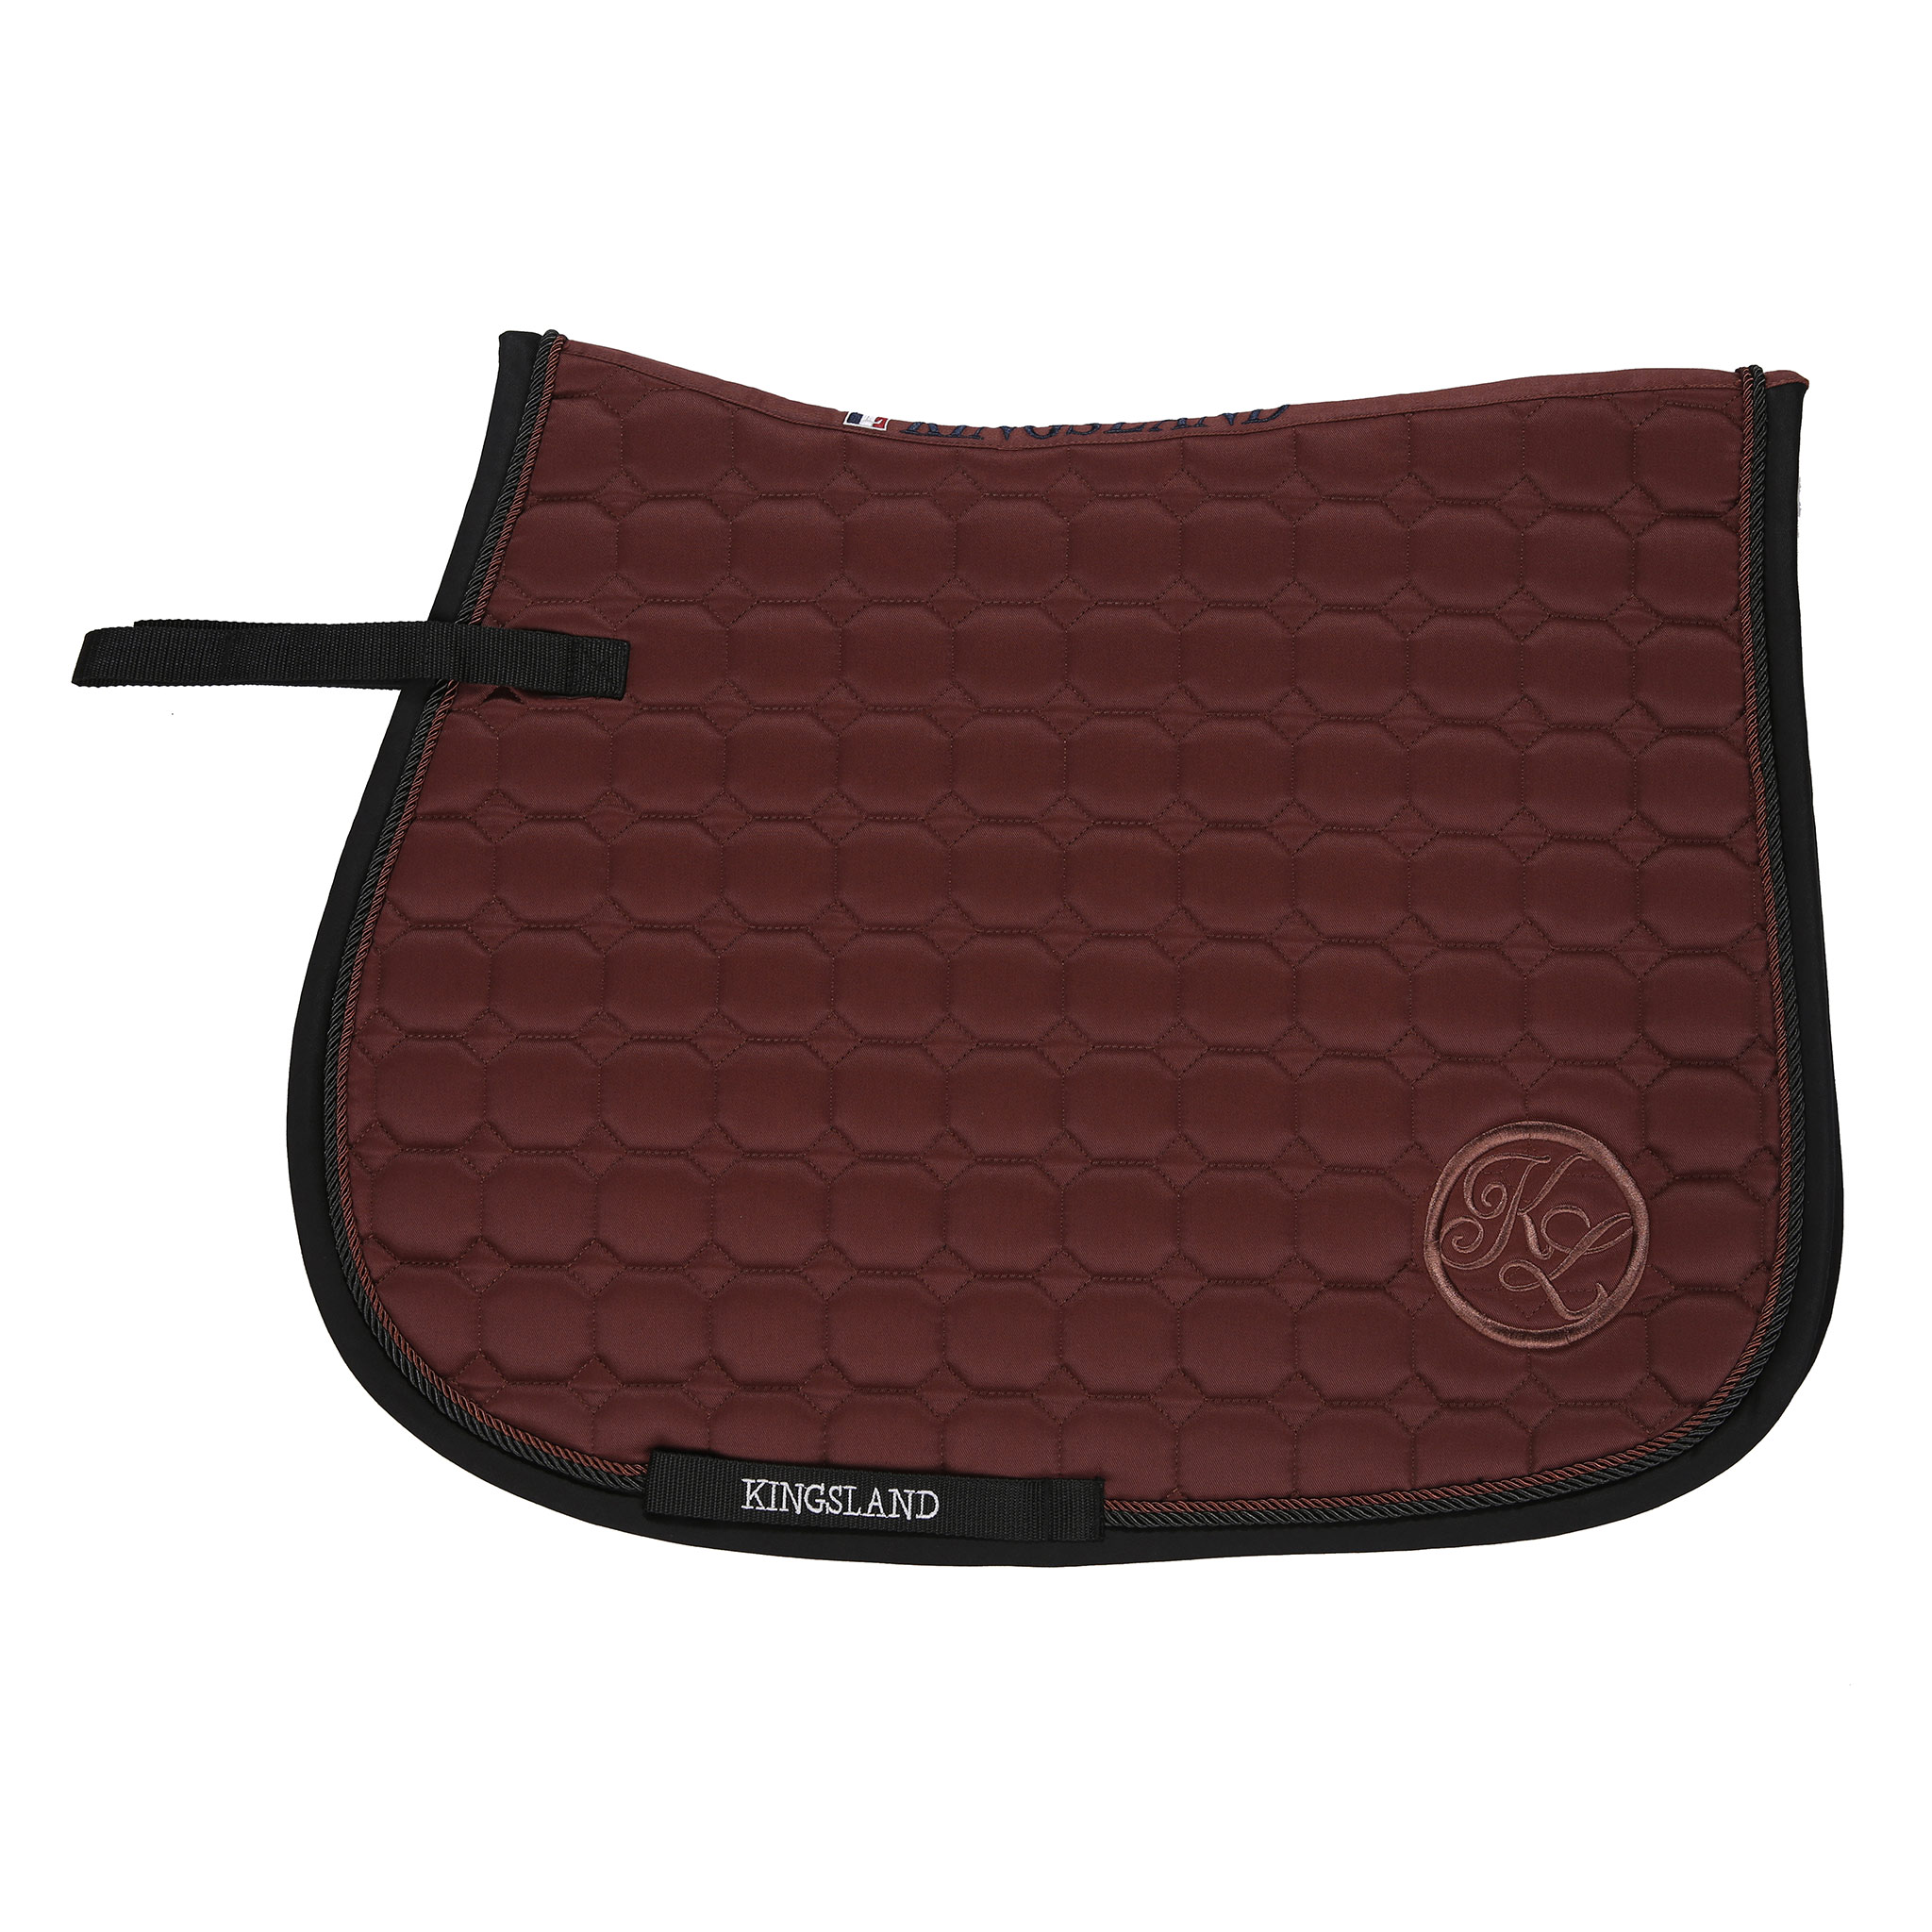 KINGSLAND EMMA BROWN SADDLE PAD